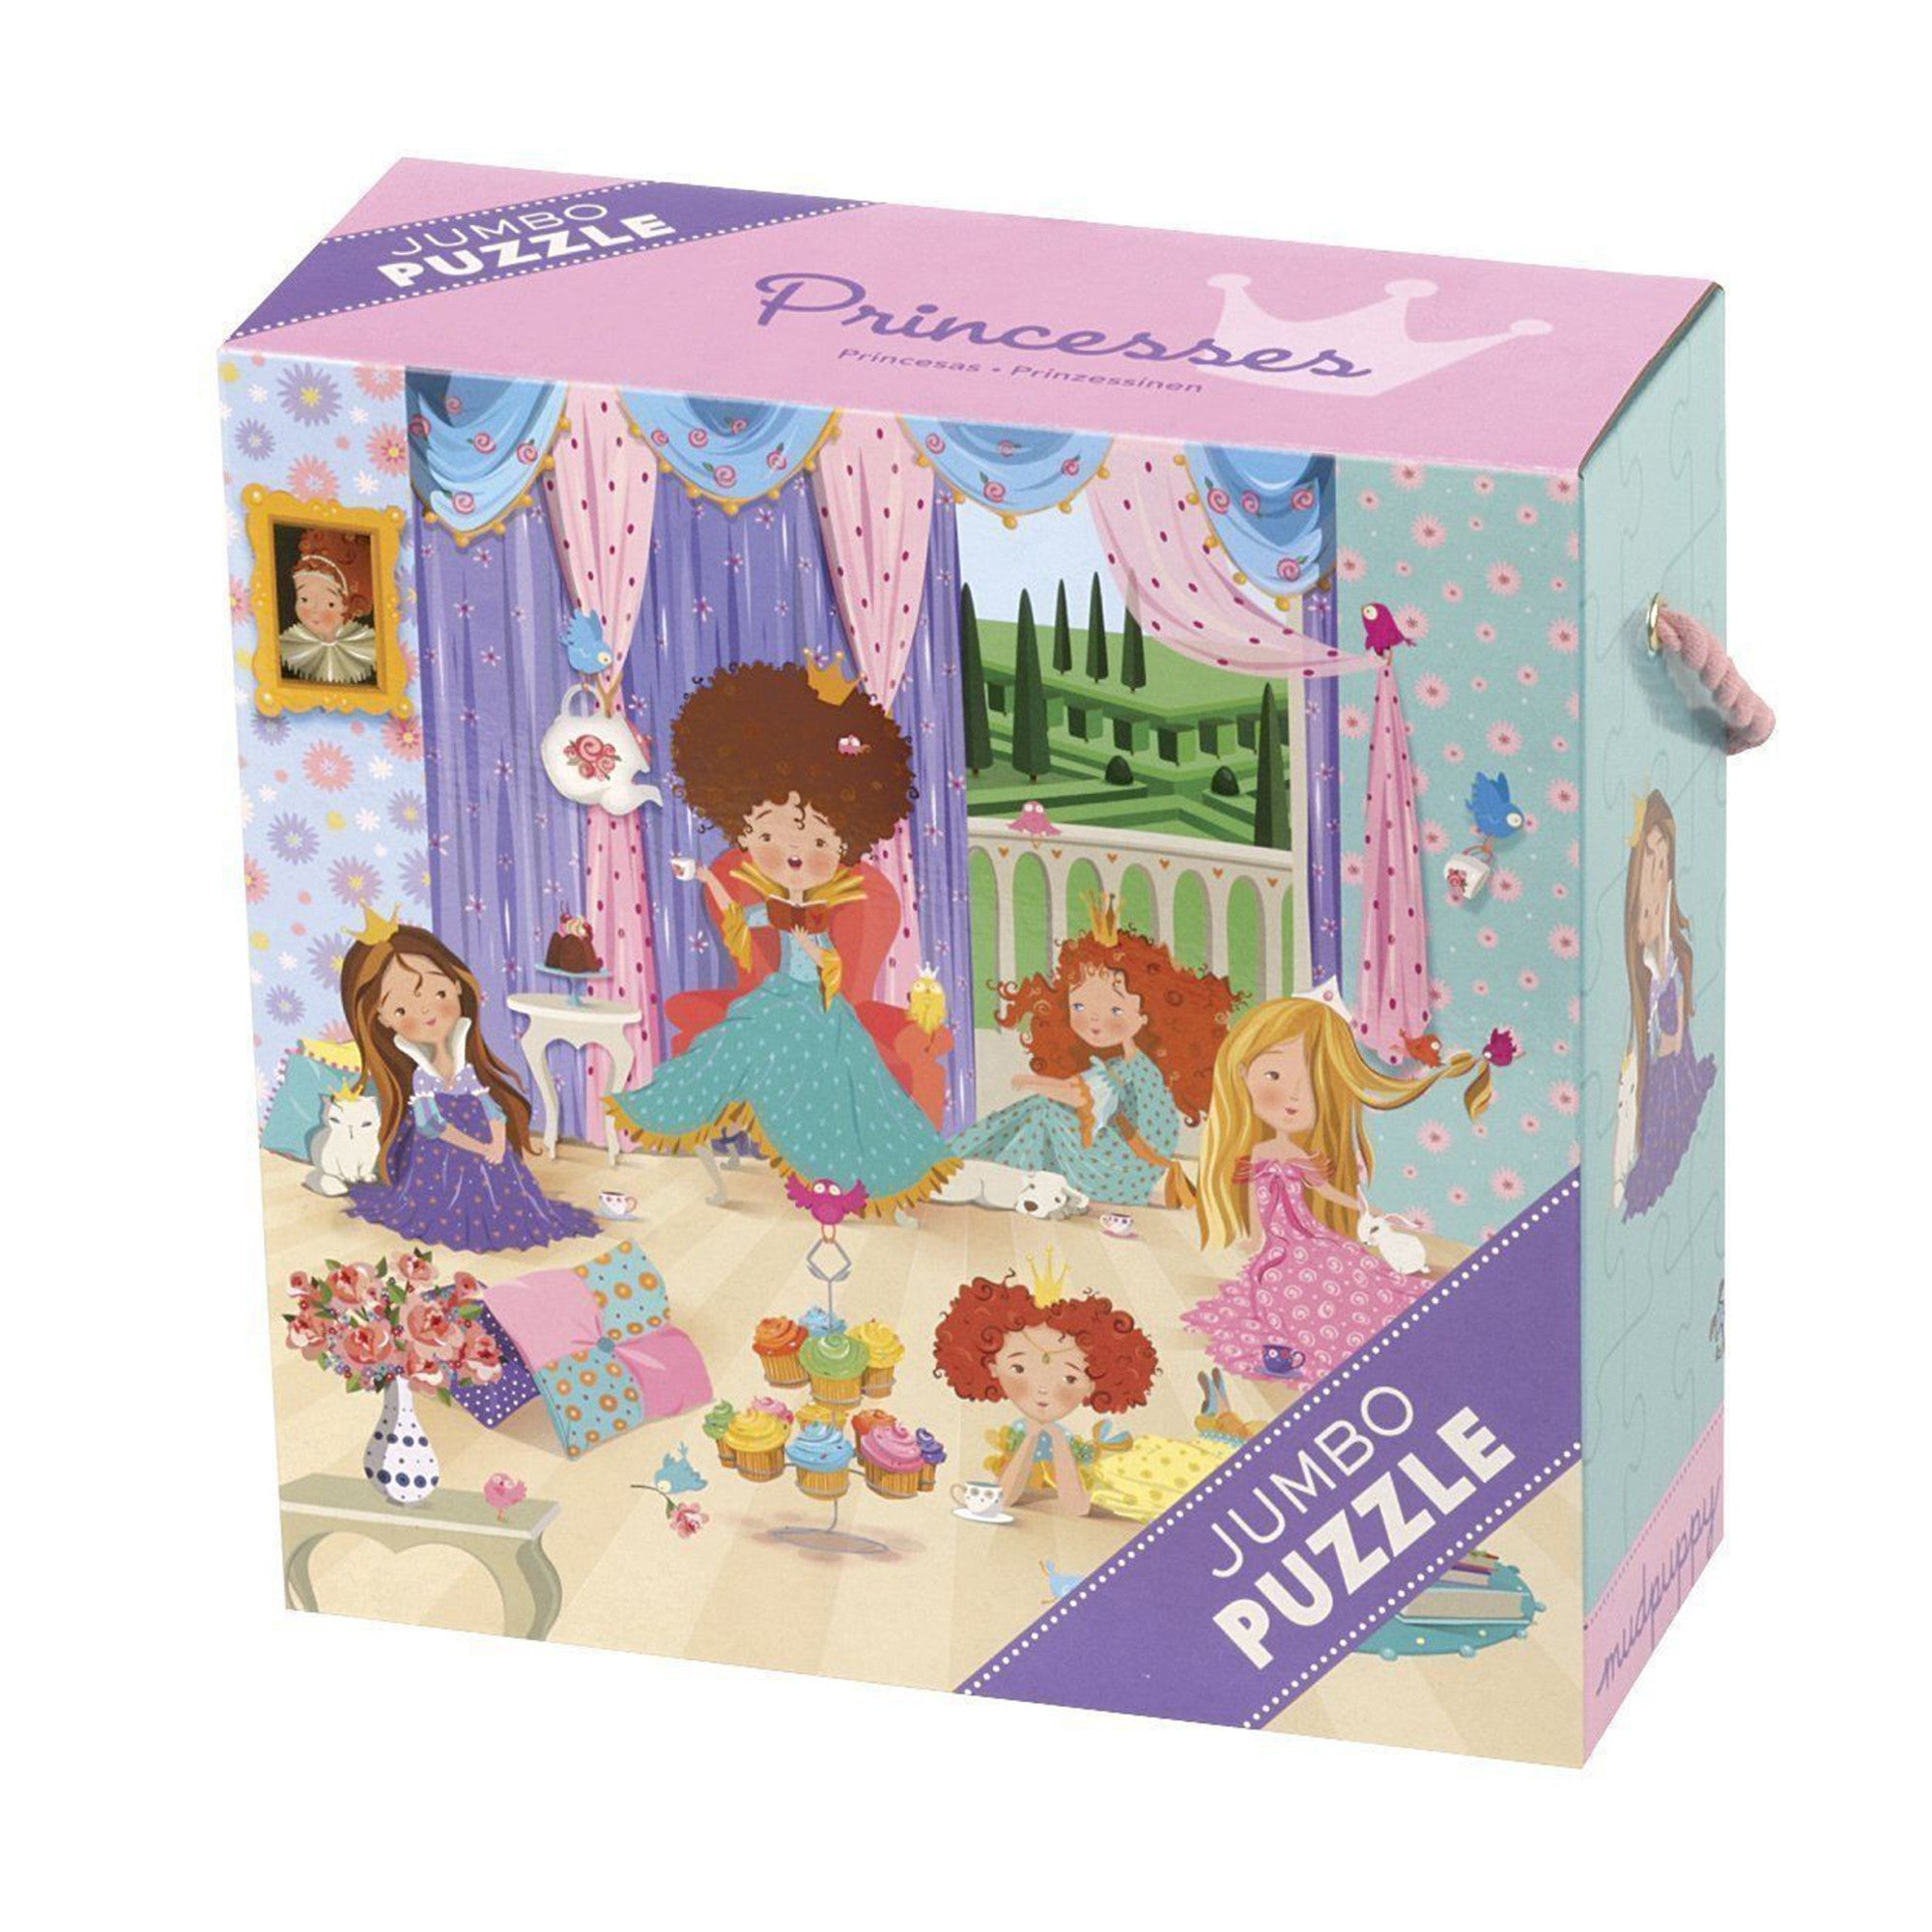 MudPuppy Jumbo Puzzle 25 Piece Mudpuppy Puzzles Princesses at Little Earth Nest Eco Shop